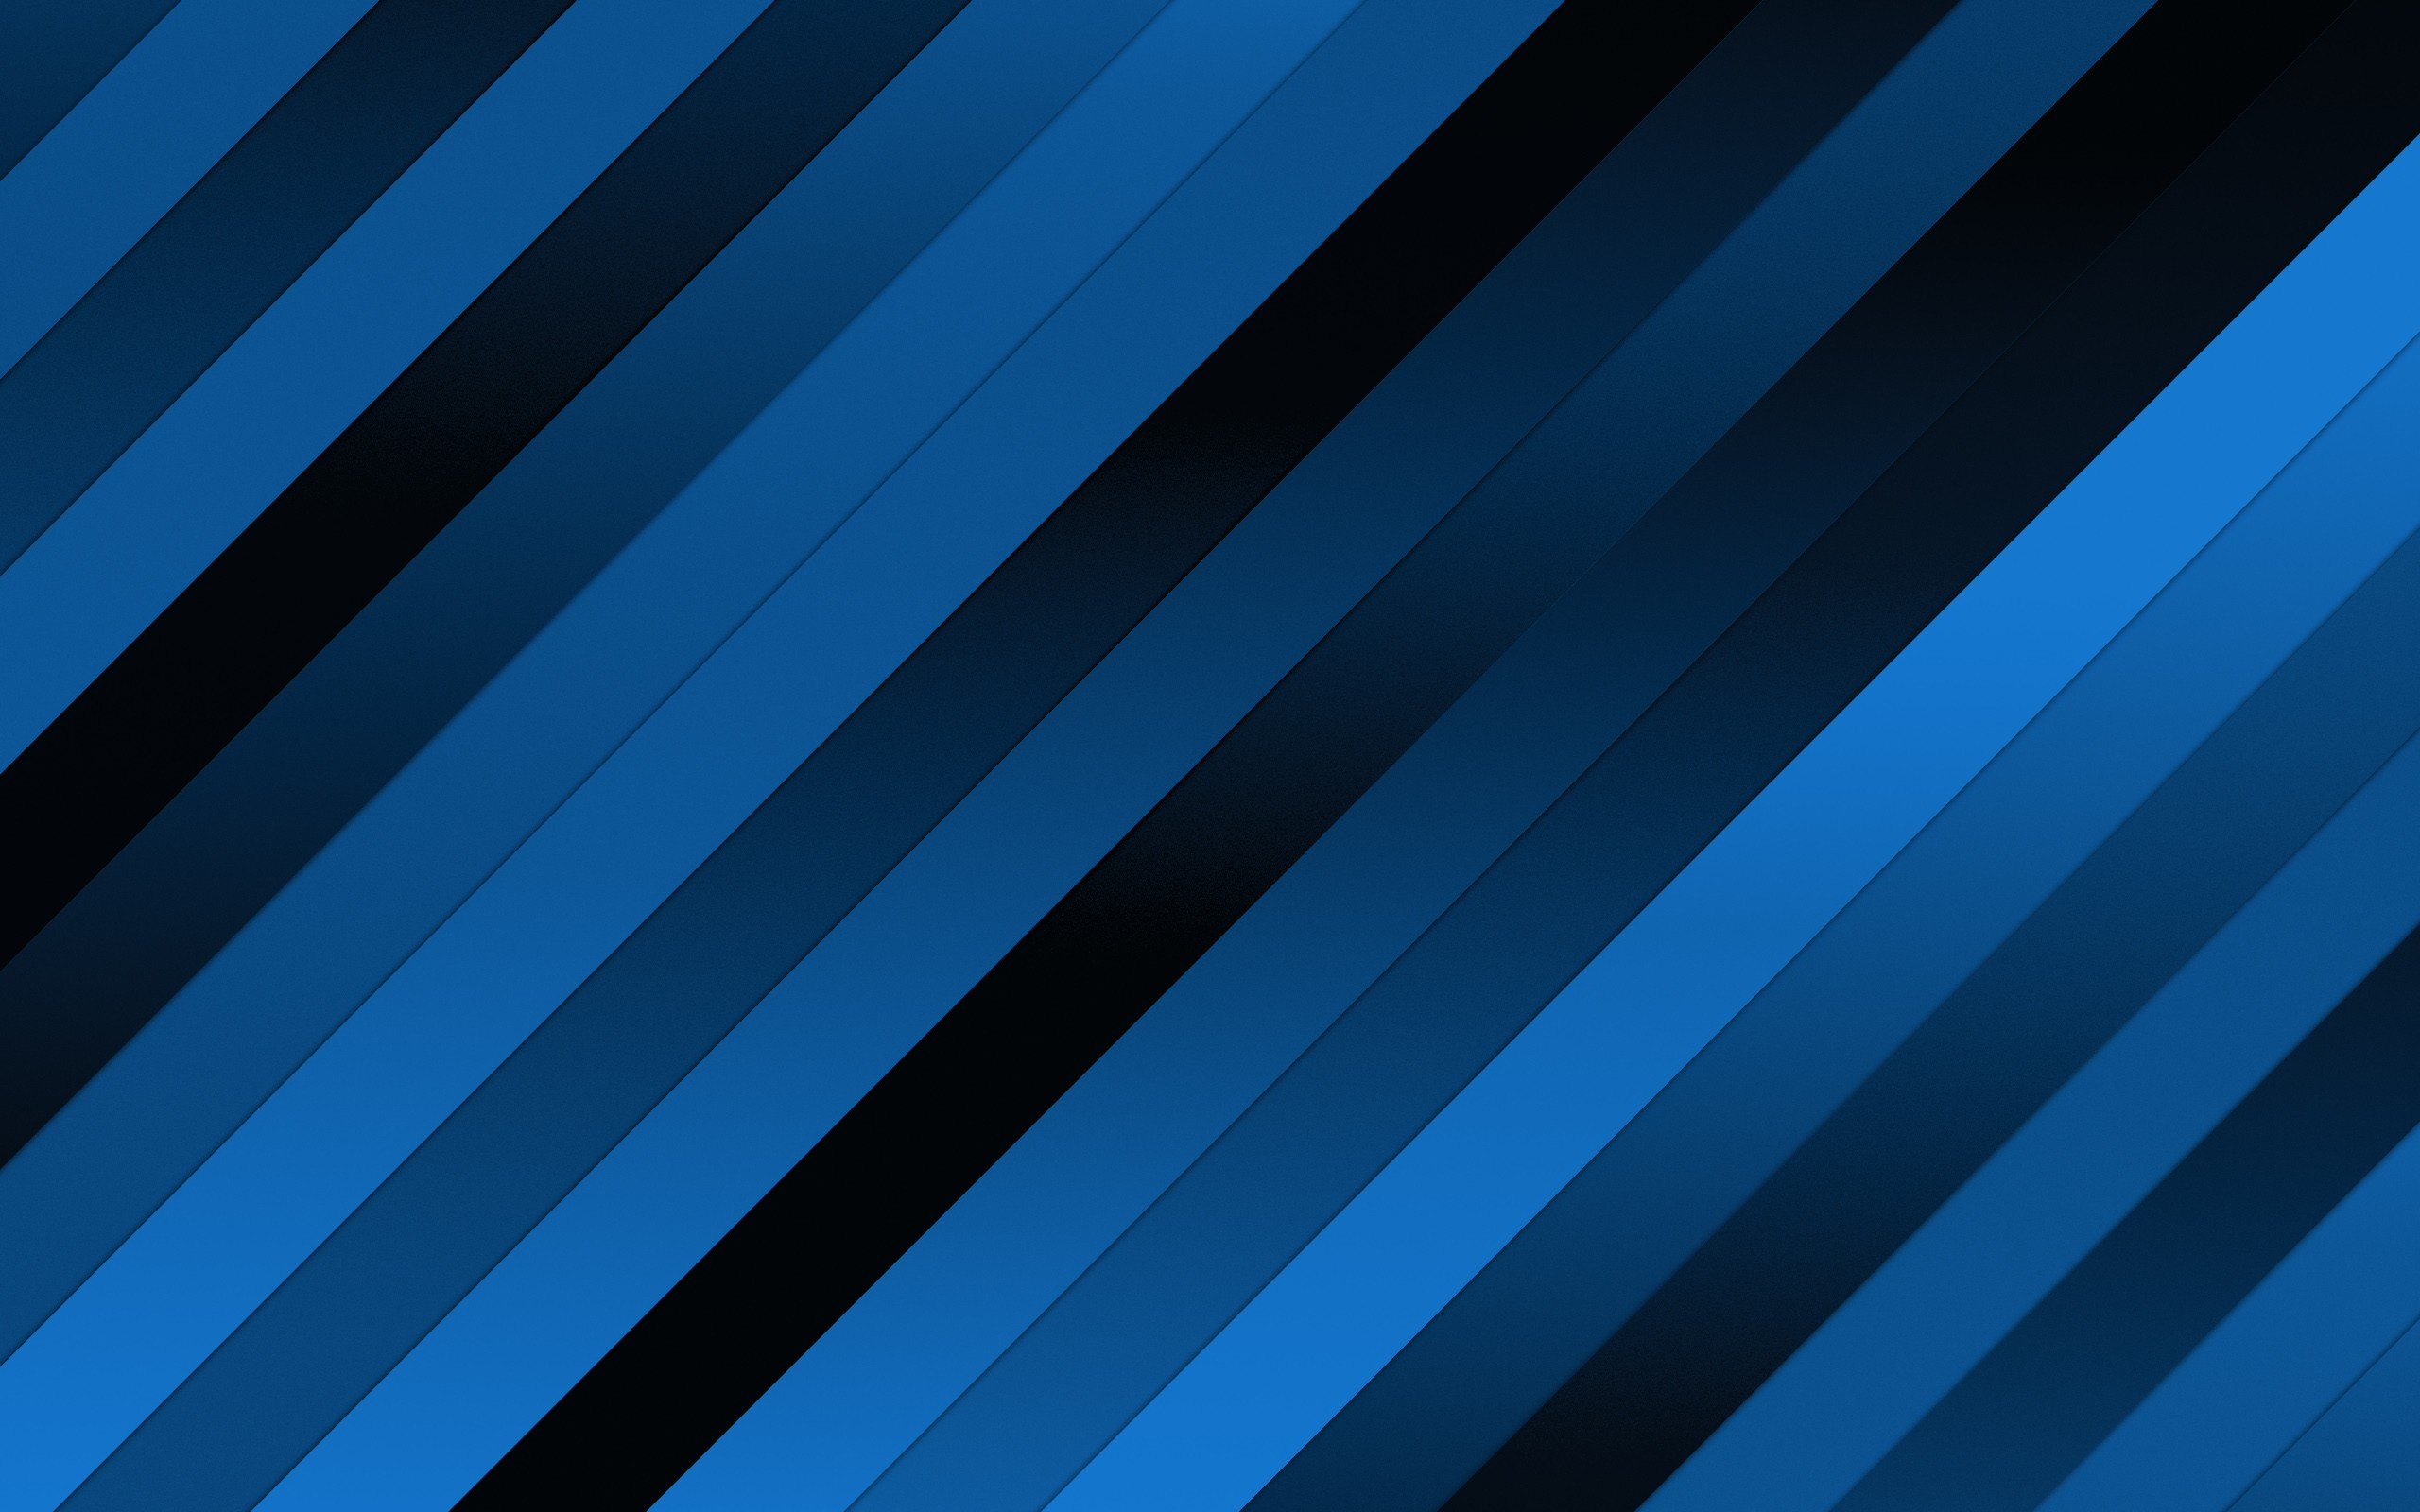 Lines Wallpapers